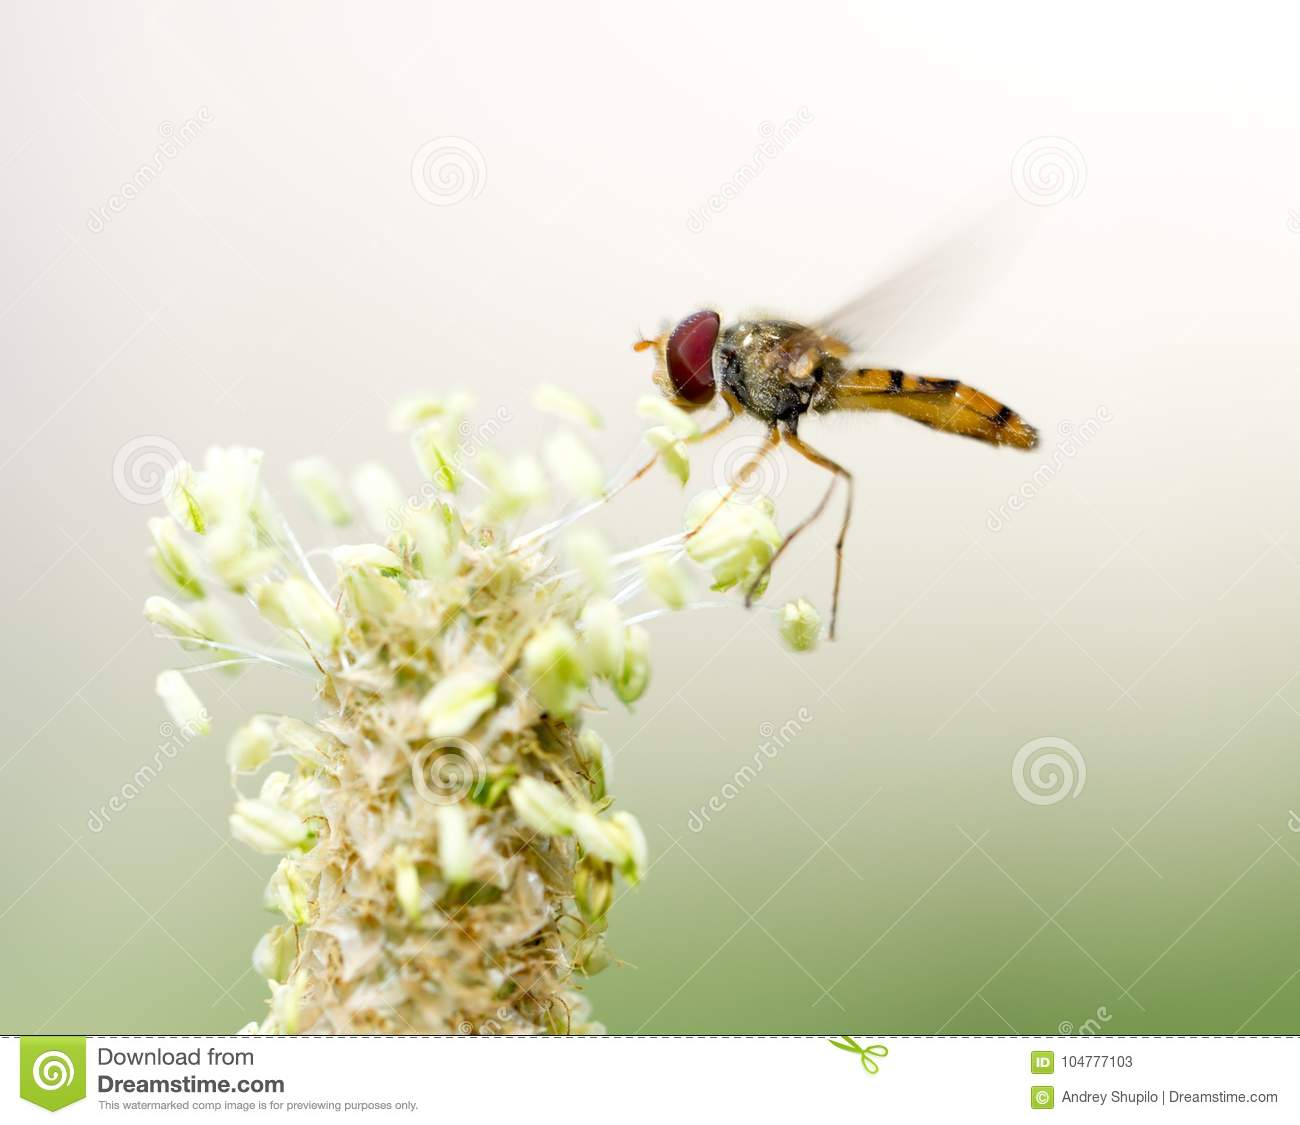 Fly in flight in nature. macro